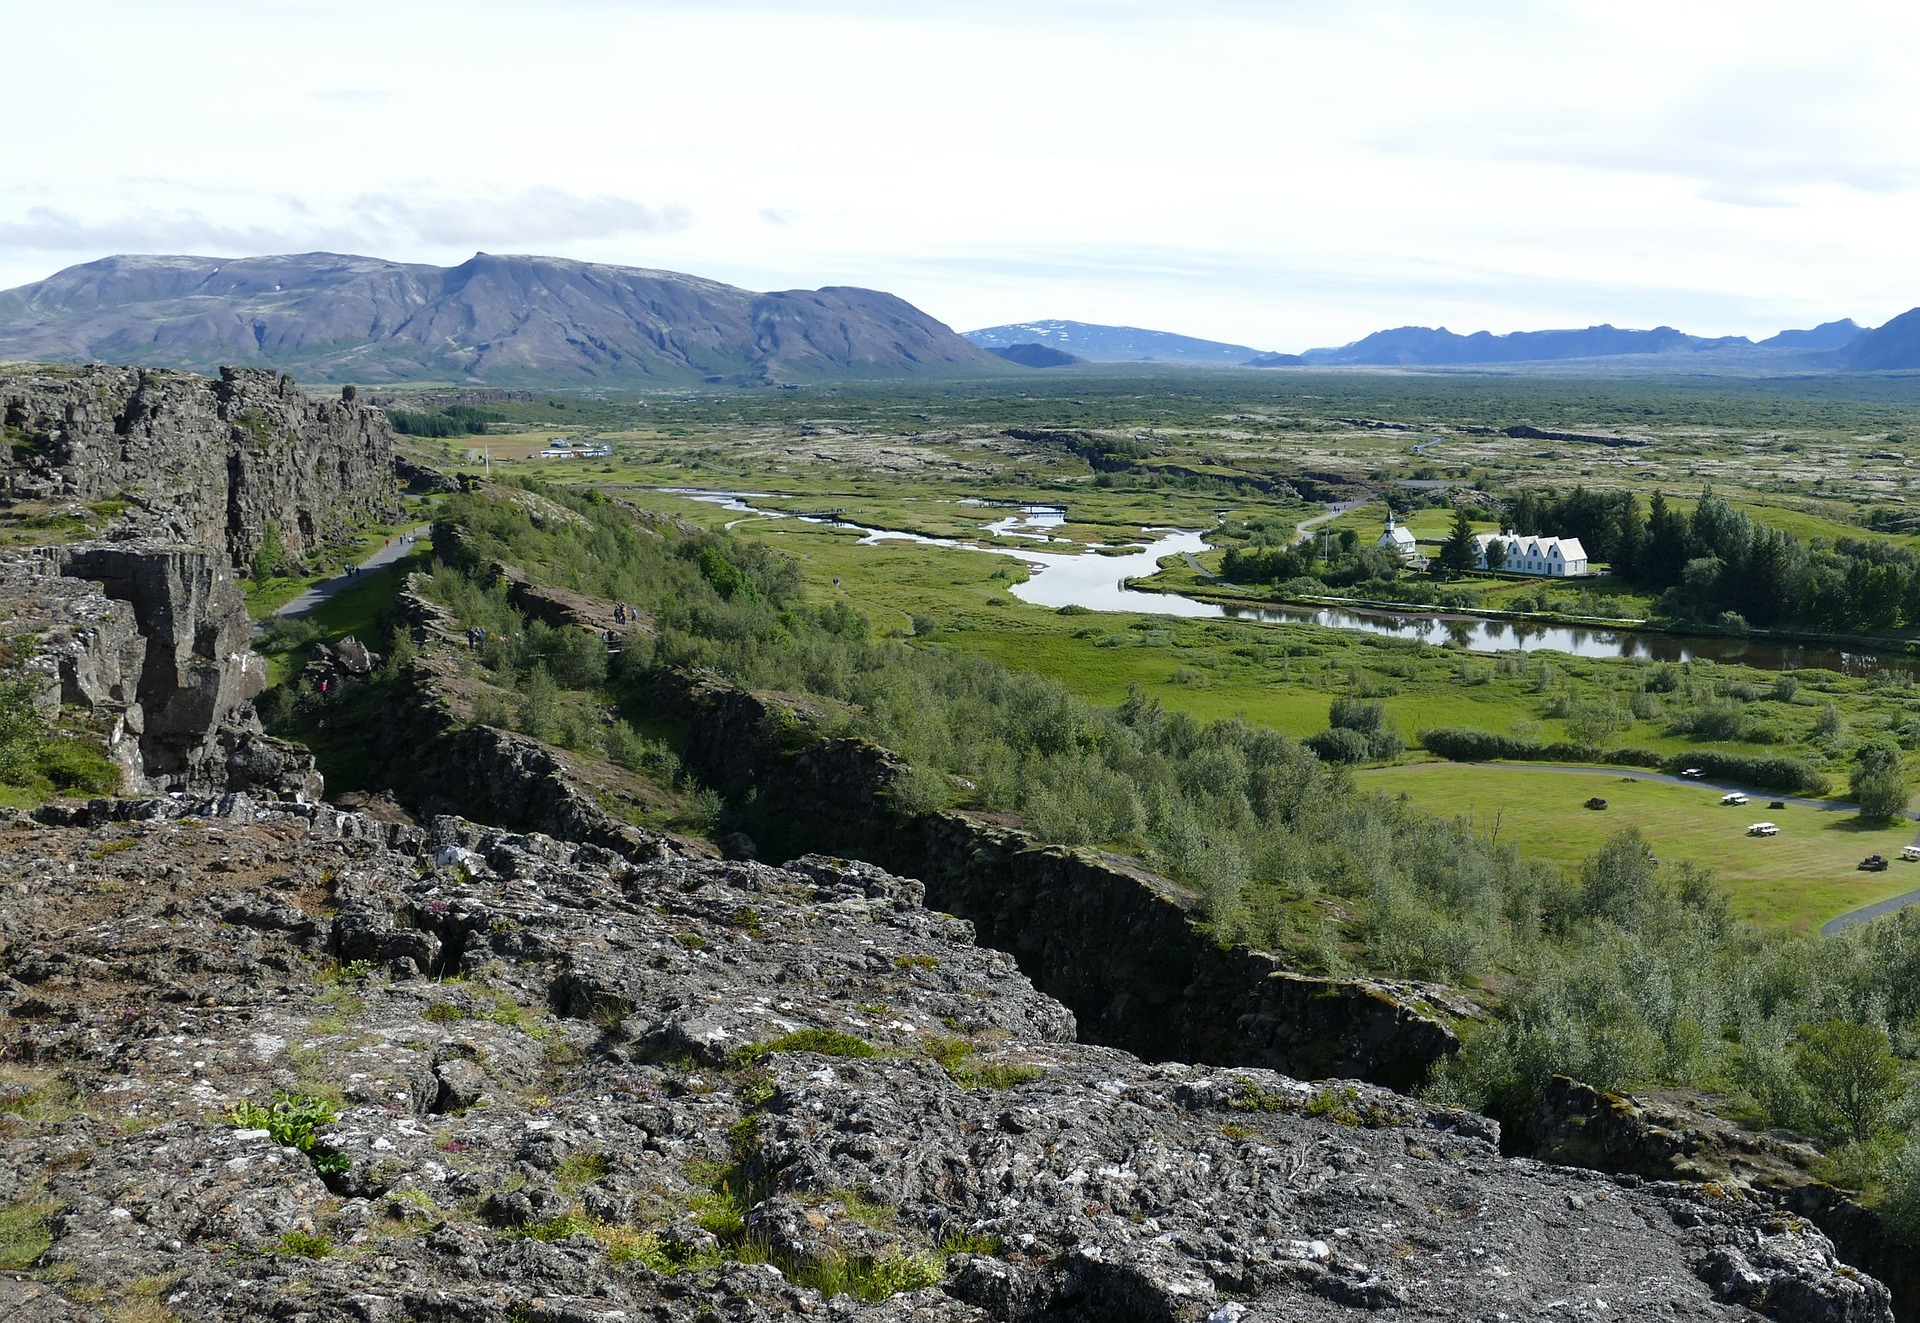 National park of Thingvellir, rocks on the foregroung, grass, tress, mountains on the background